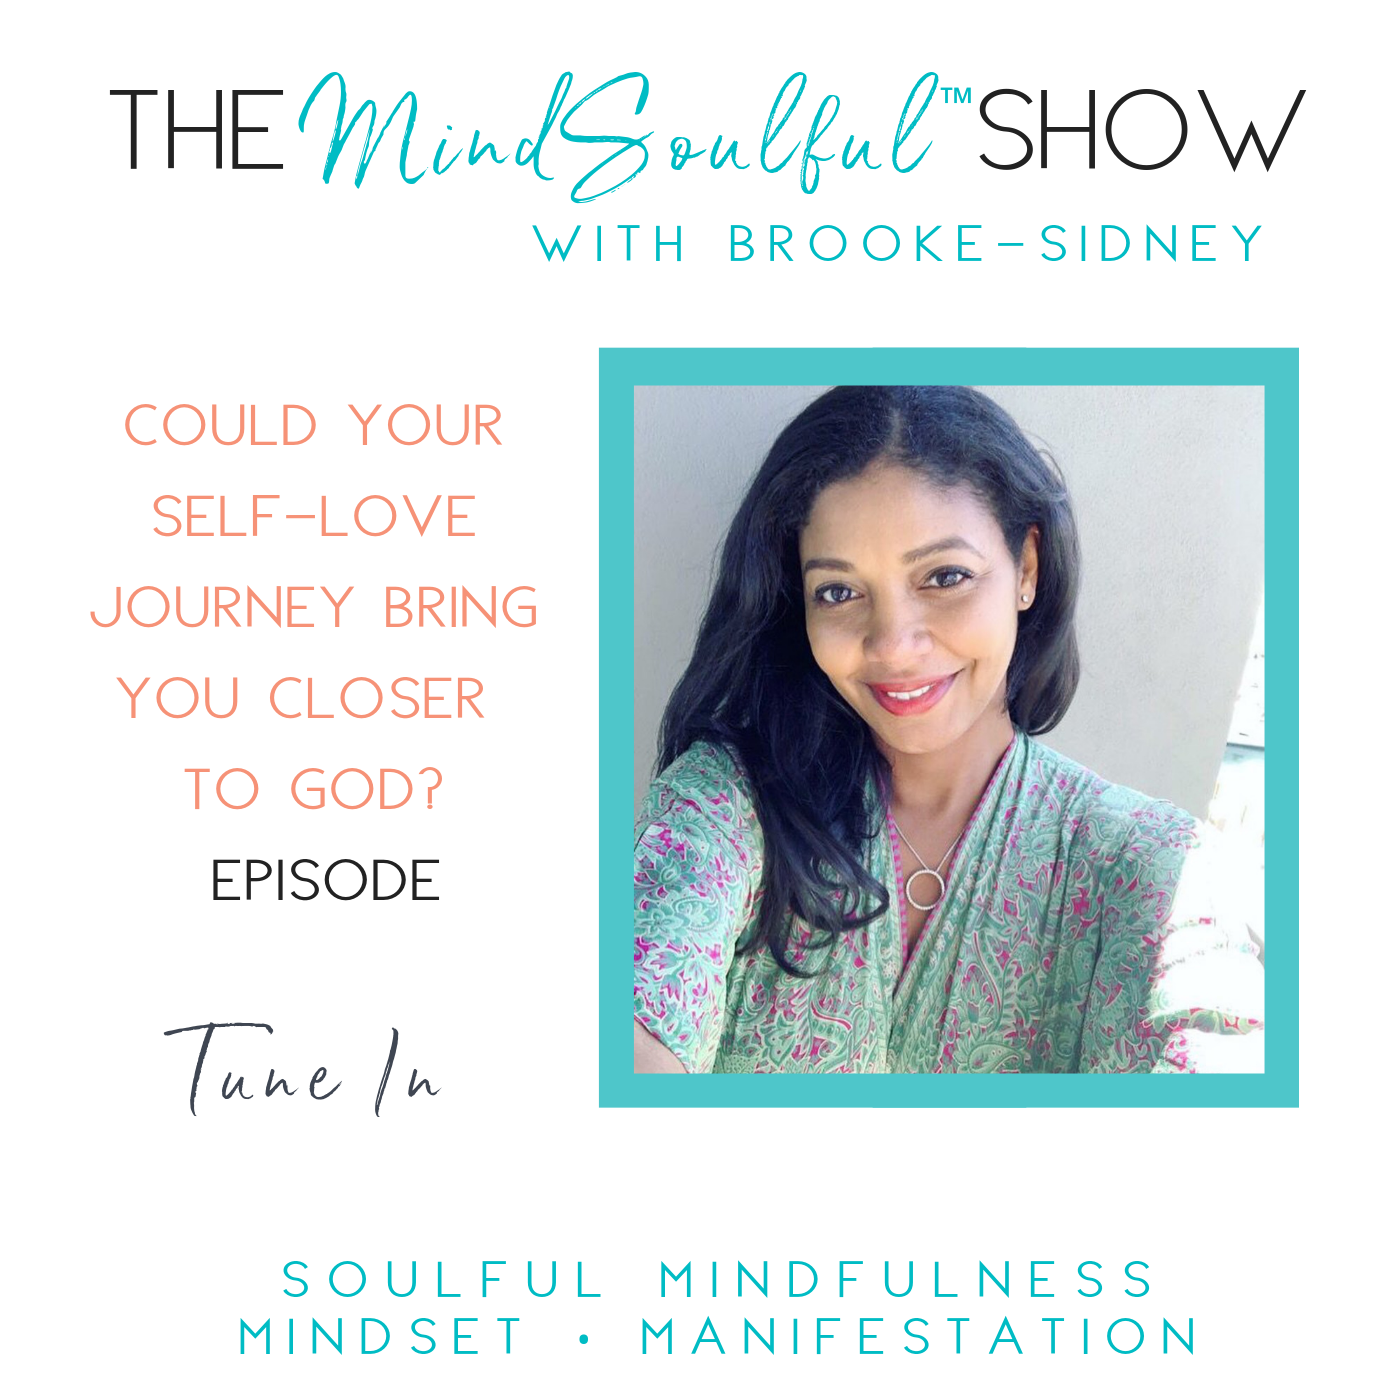 The MindSoulful Show - COULD YOUR SELF LOVE JOURNEY BRING YOU CLOSER TO GOD_.png